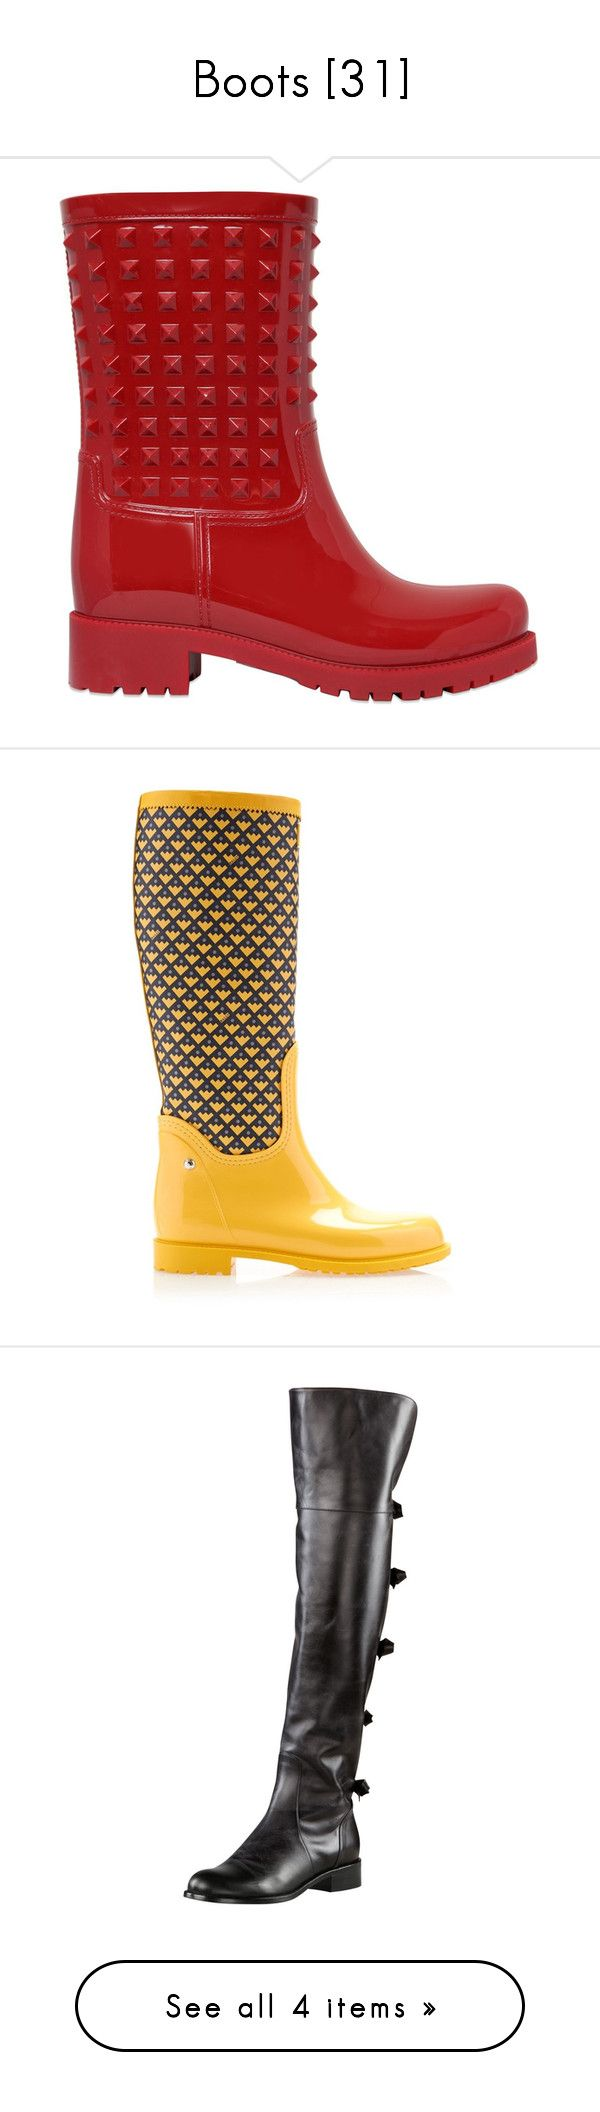 """""""Boots [31]"""" by gdavilla ❤ liked on Polyvore featuring shoes, boots, valentino boots, rain boots, mid-heel boots, wellington boots, mid heel shoes, rubber sole shoes, bally shoes and yellow shoes"""